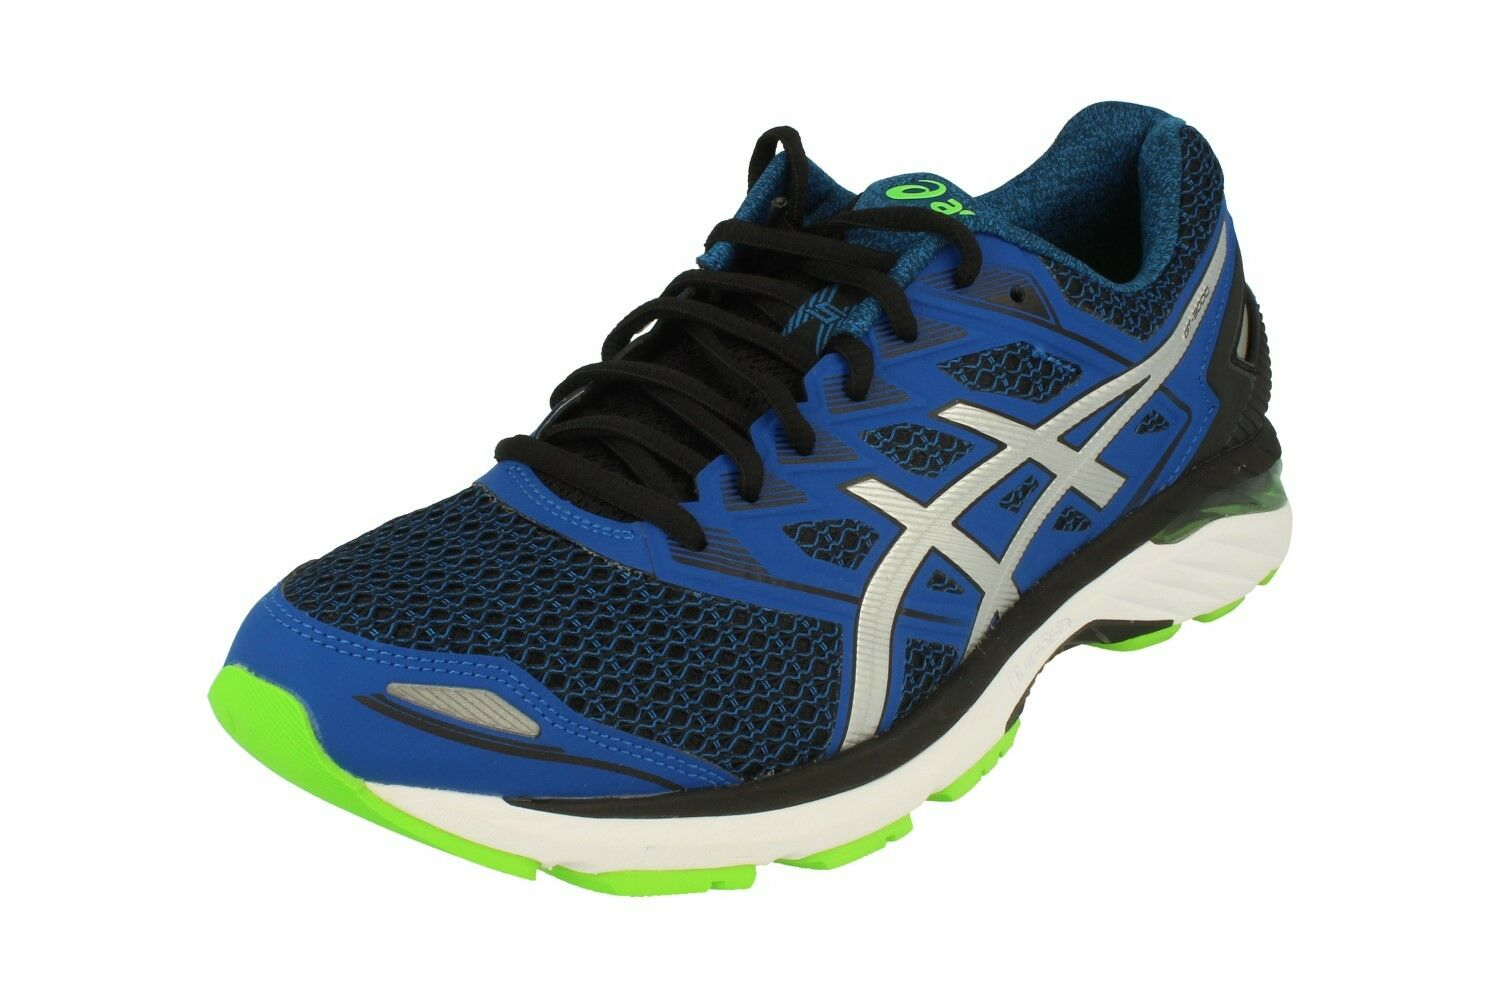 Asics Gt-3000 5 Mens Running Trainers T705N Sneakers shoes 9093